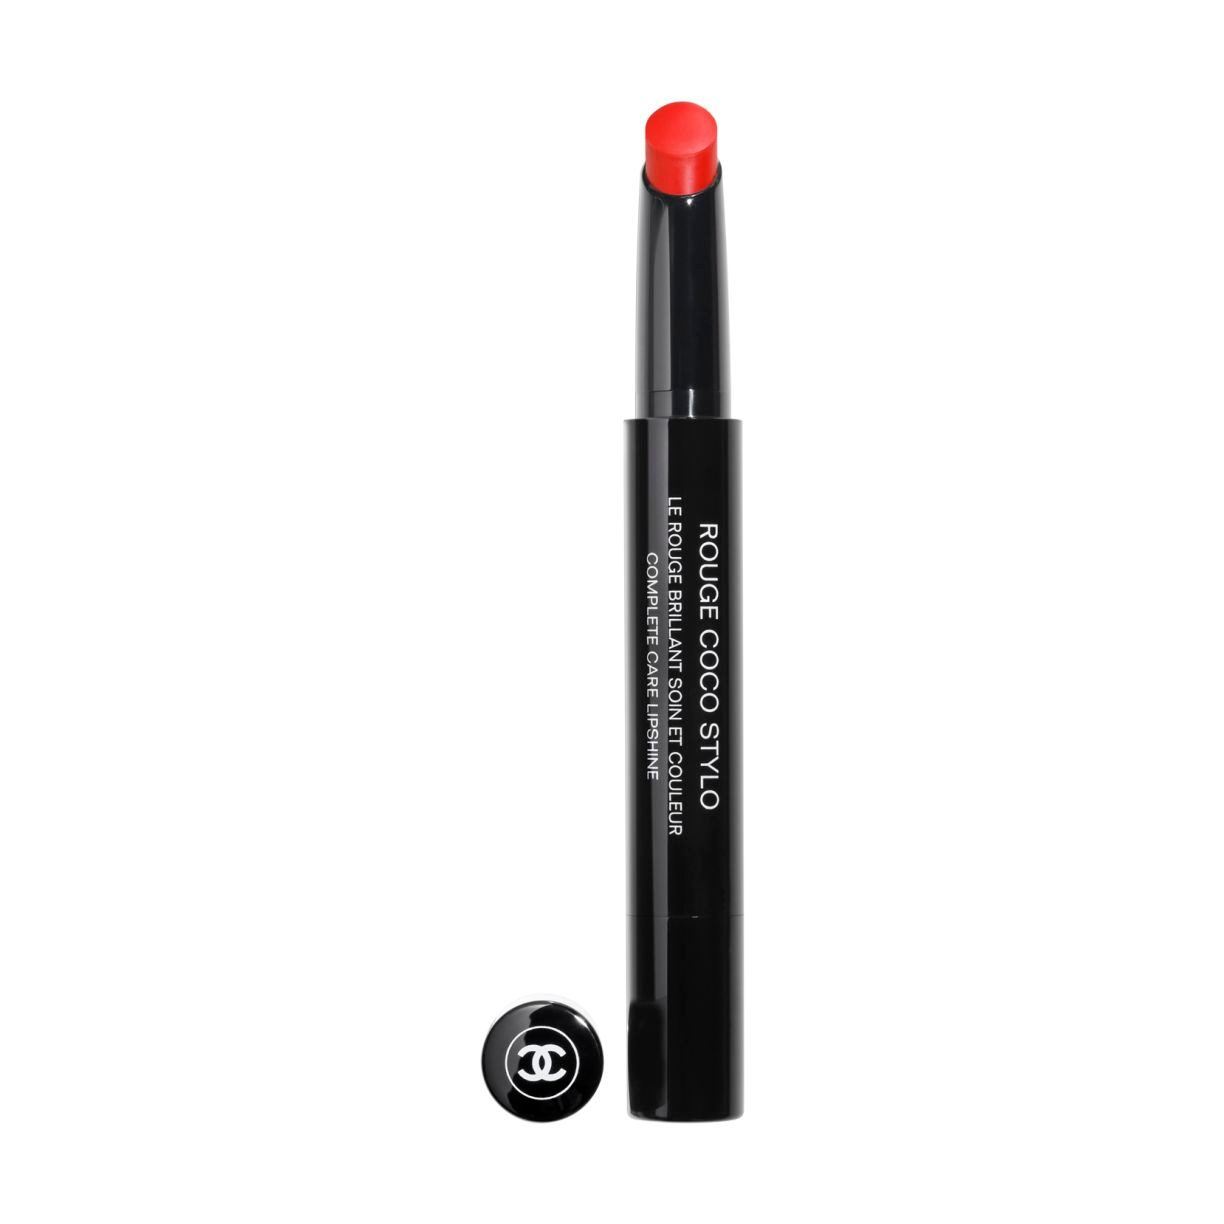 ROUGE COCO STYLO COMPLETE CARE LIPSHINE 222 - FICTION